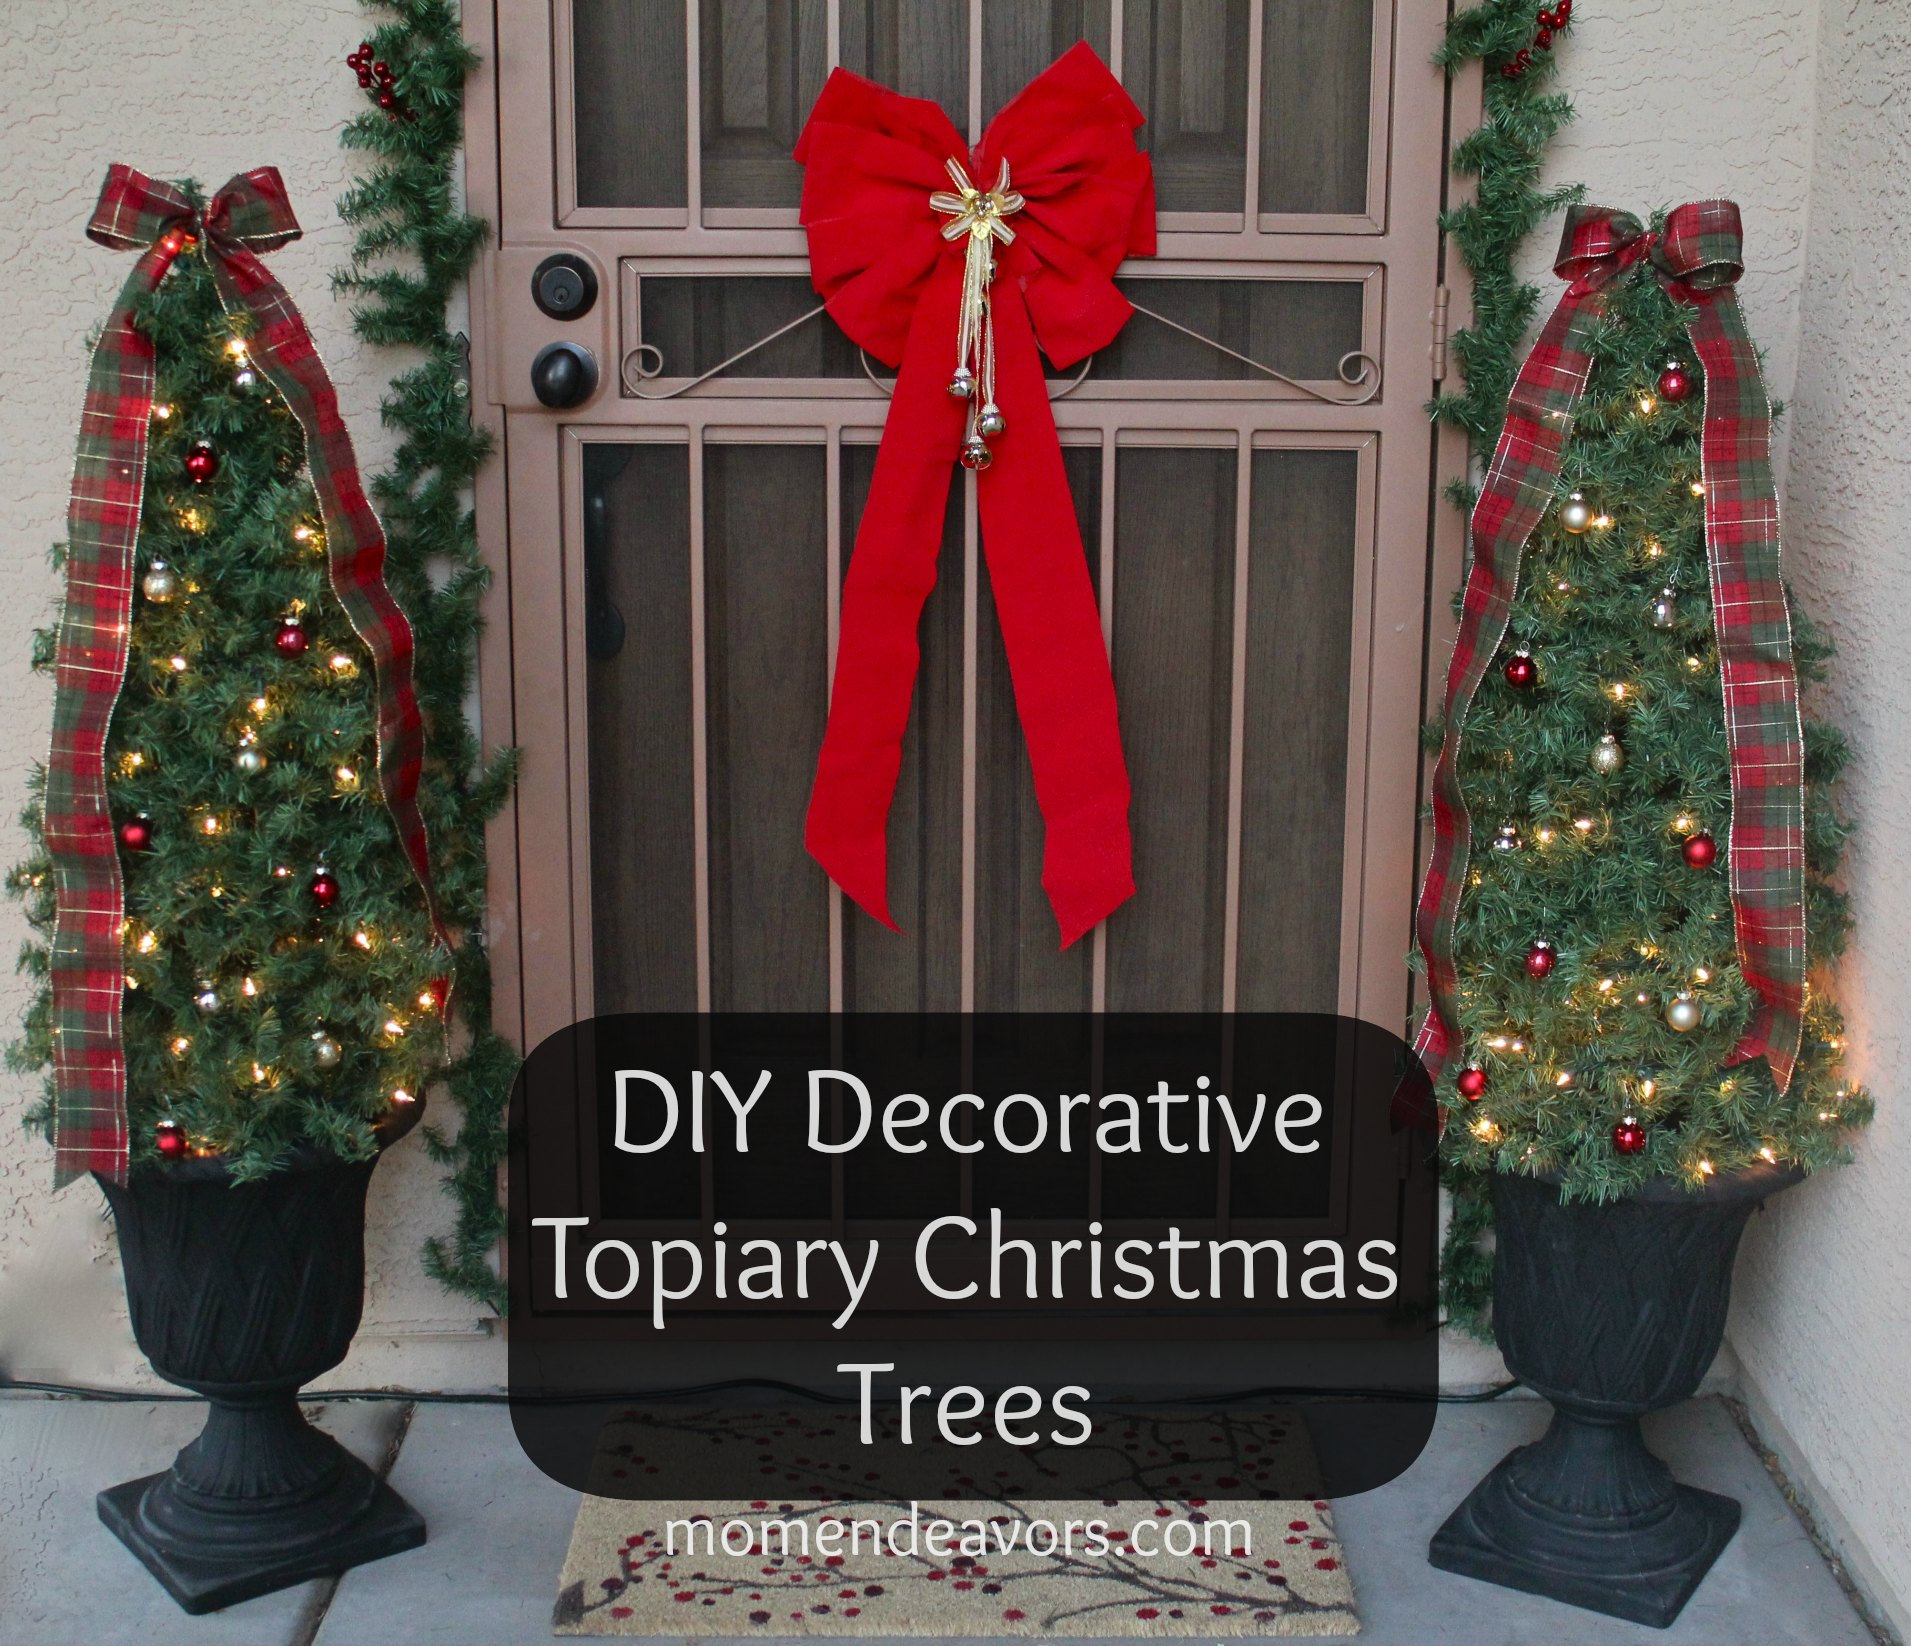 Diy Decorative Topiary Christmas Trees Mom Endeavors